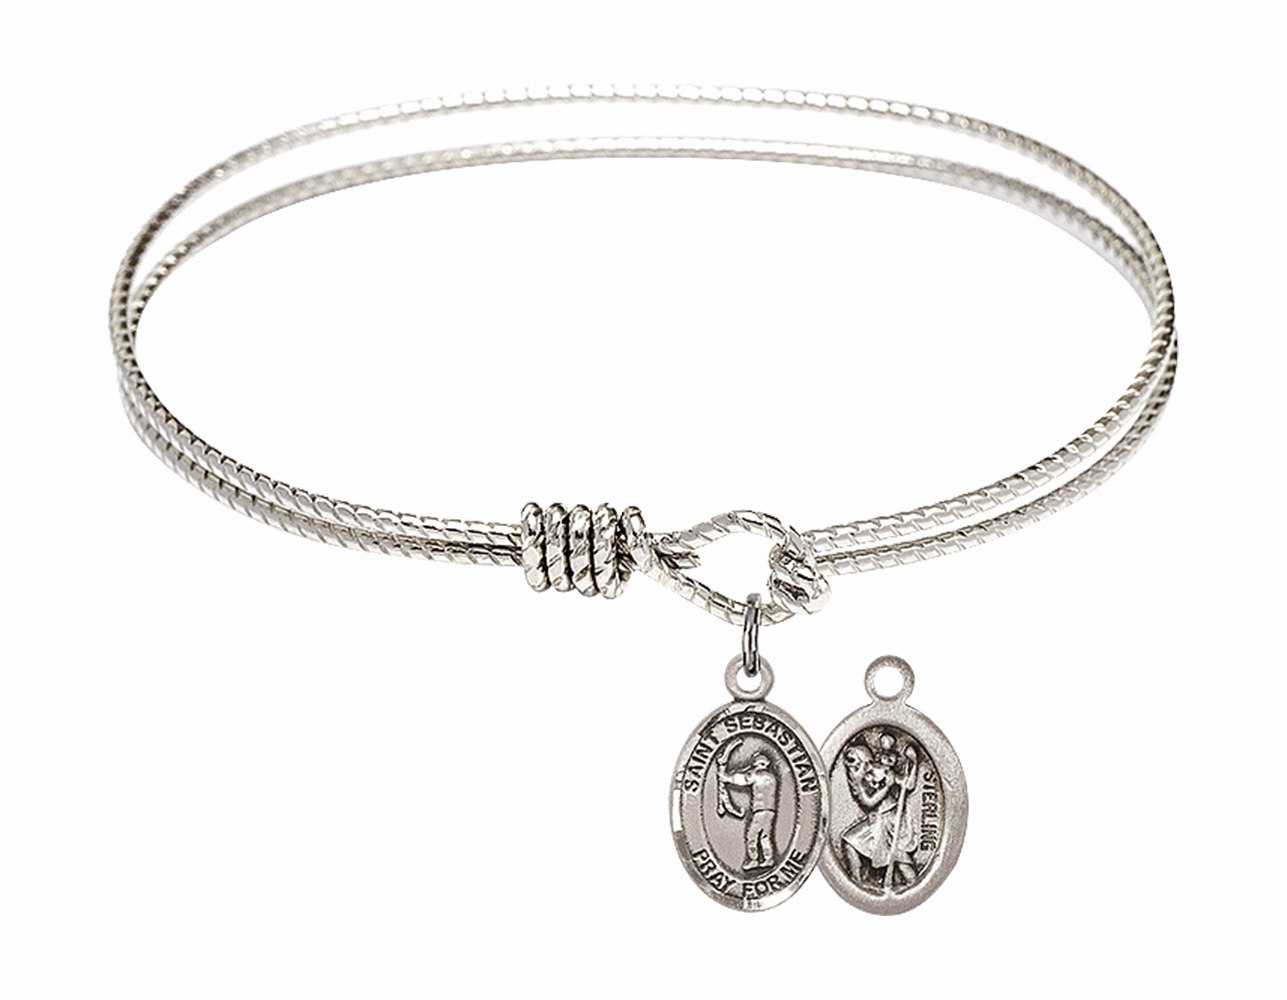 Twist Round Eye Hook St Sebastian Archery Bangle Charm Bracelet by Bliss